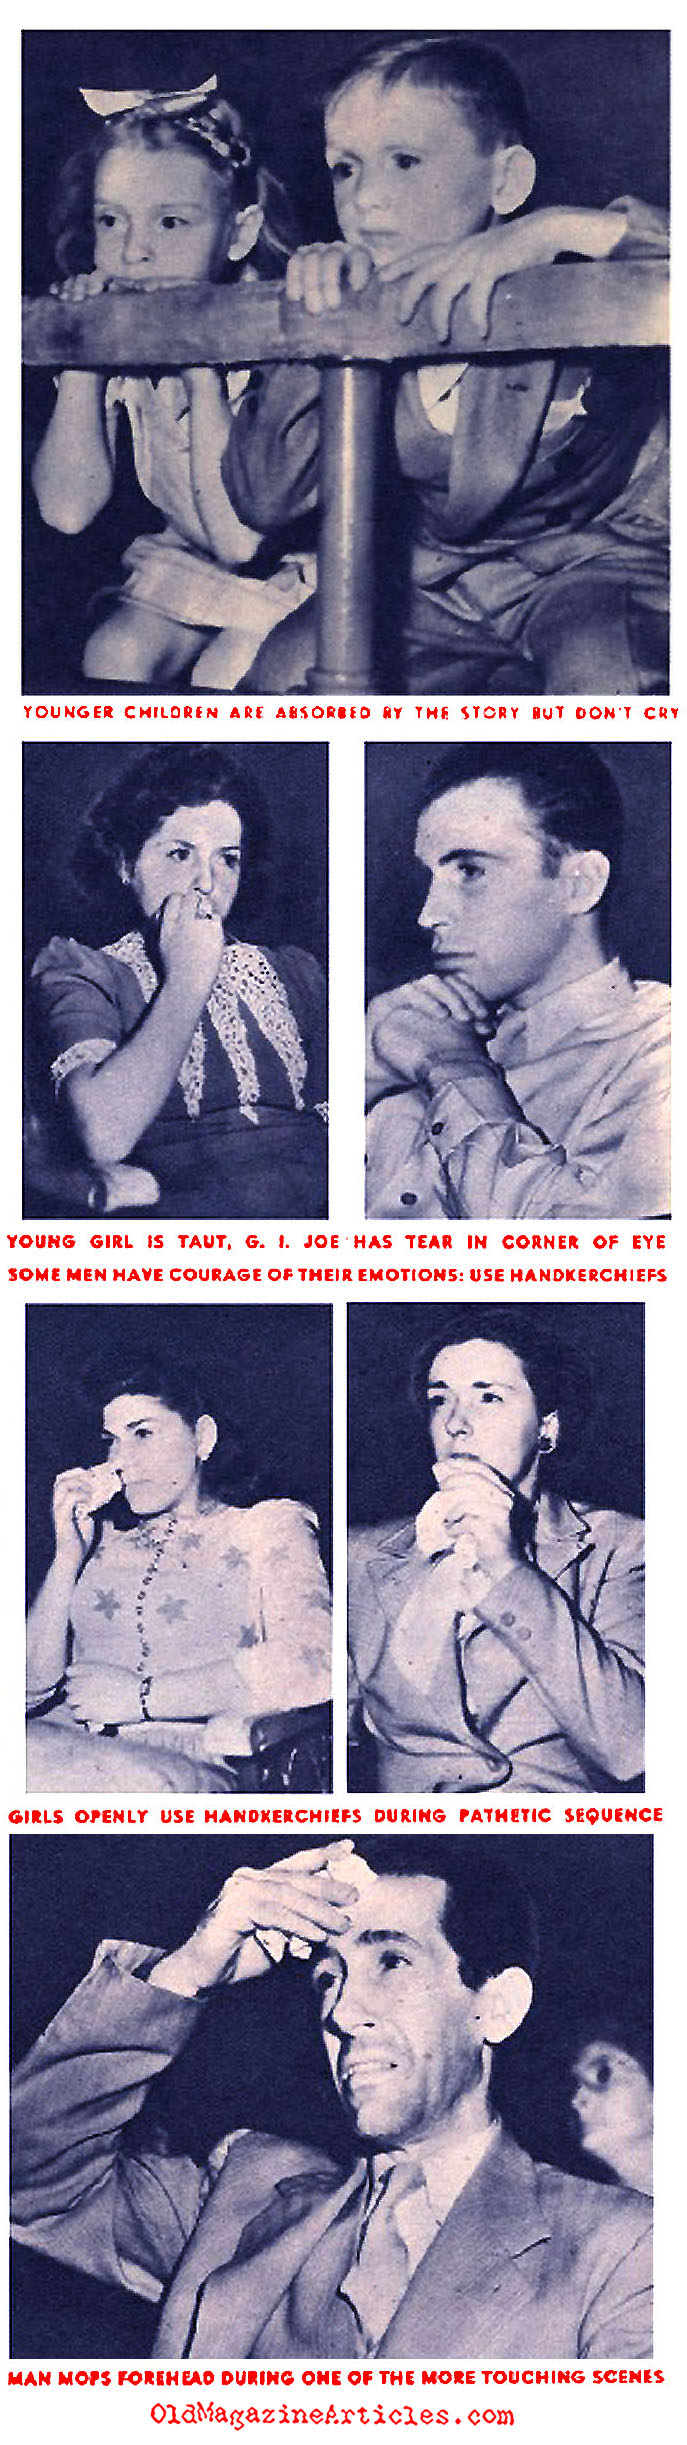 Tears in the Dark of the Theater (Click Magazine, 1944)